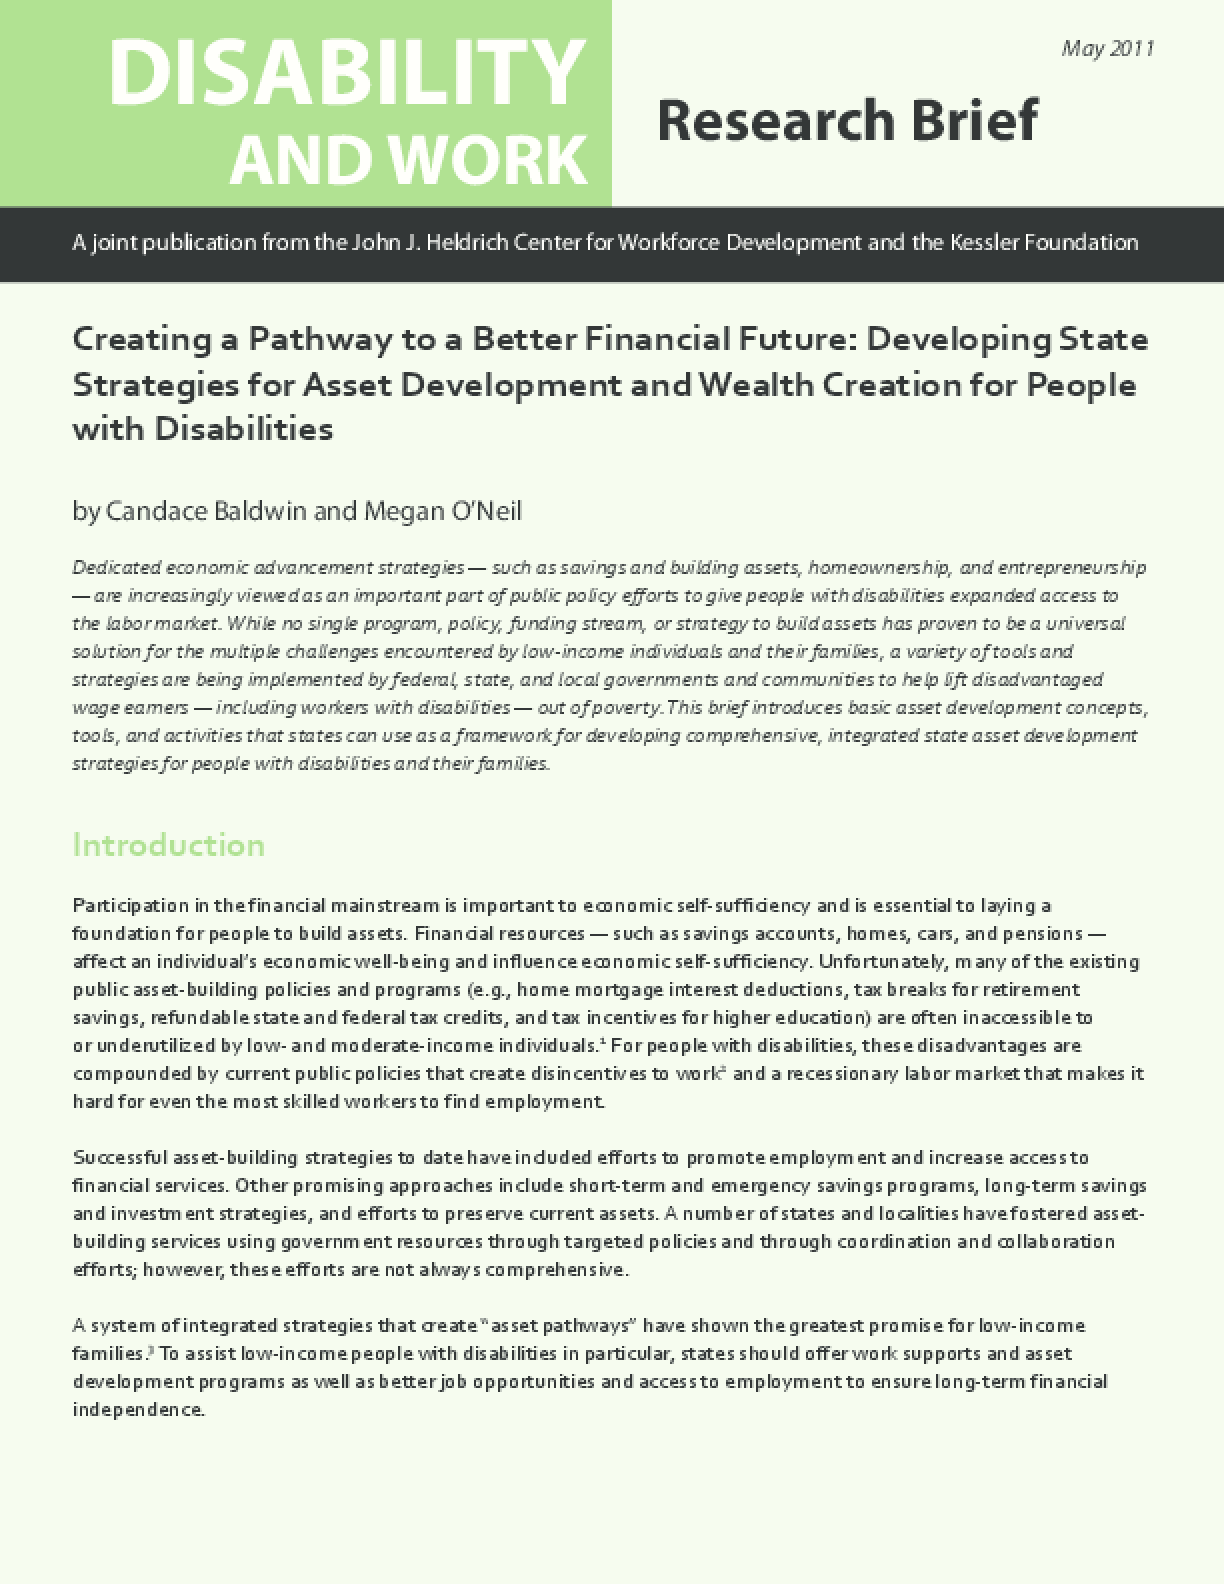 Creating a Pathway to a Better Financial Future: Developing State Strategies for Asset Development and Wealth Creation for People with Disabilities